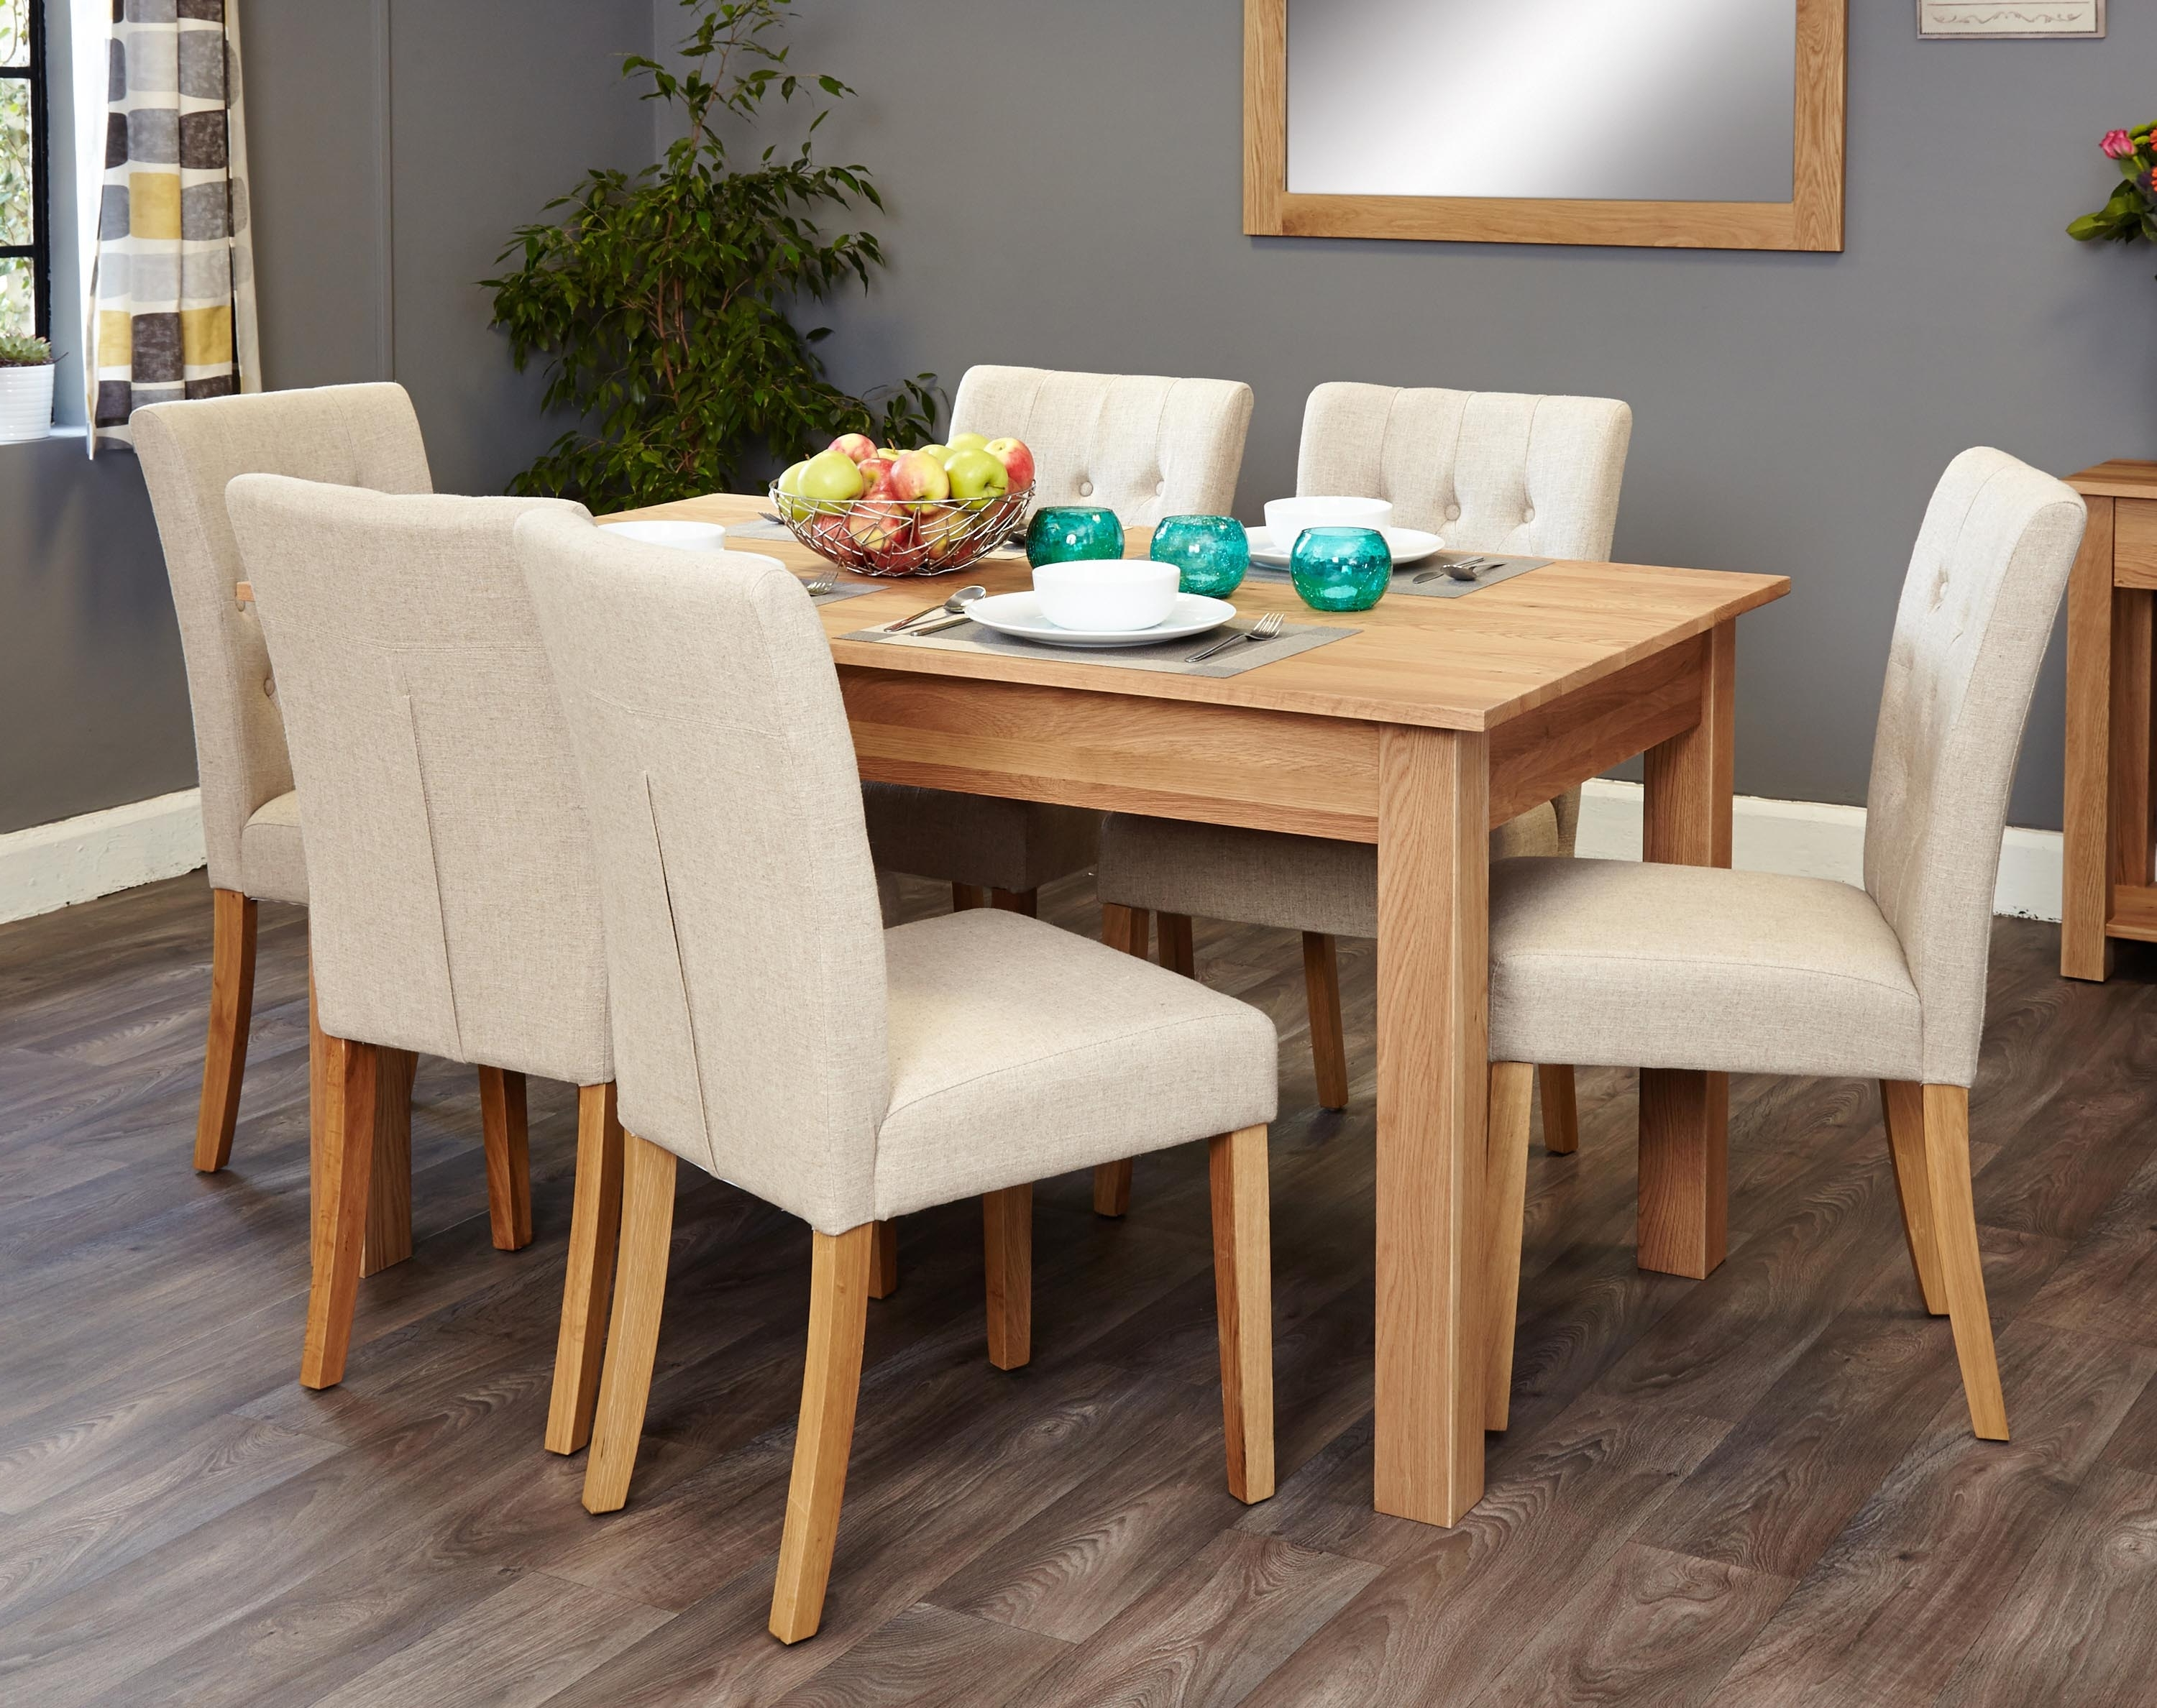 Mobel Oak 6 Seater Dining Table Set (Biscuit Flare Back) (Socor04B For Trendy Oak 6 Seater Dining Tables (View 24 of 25)